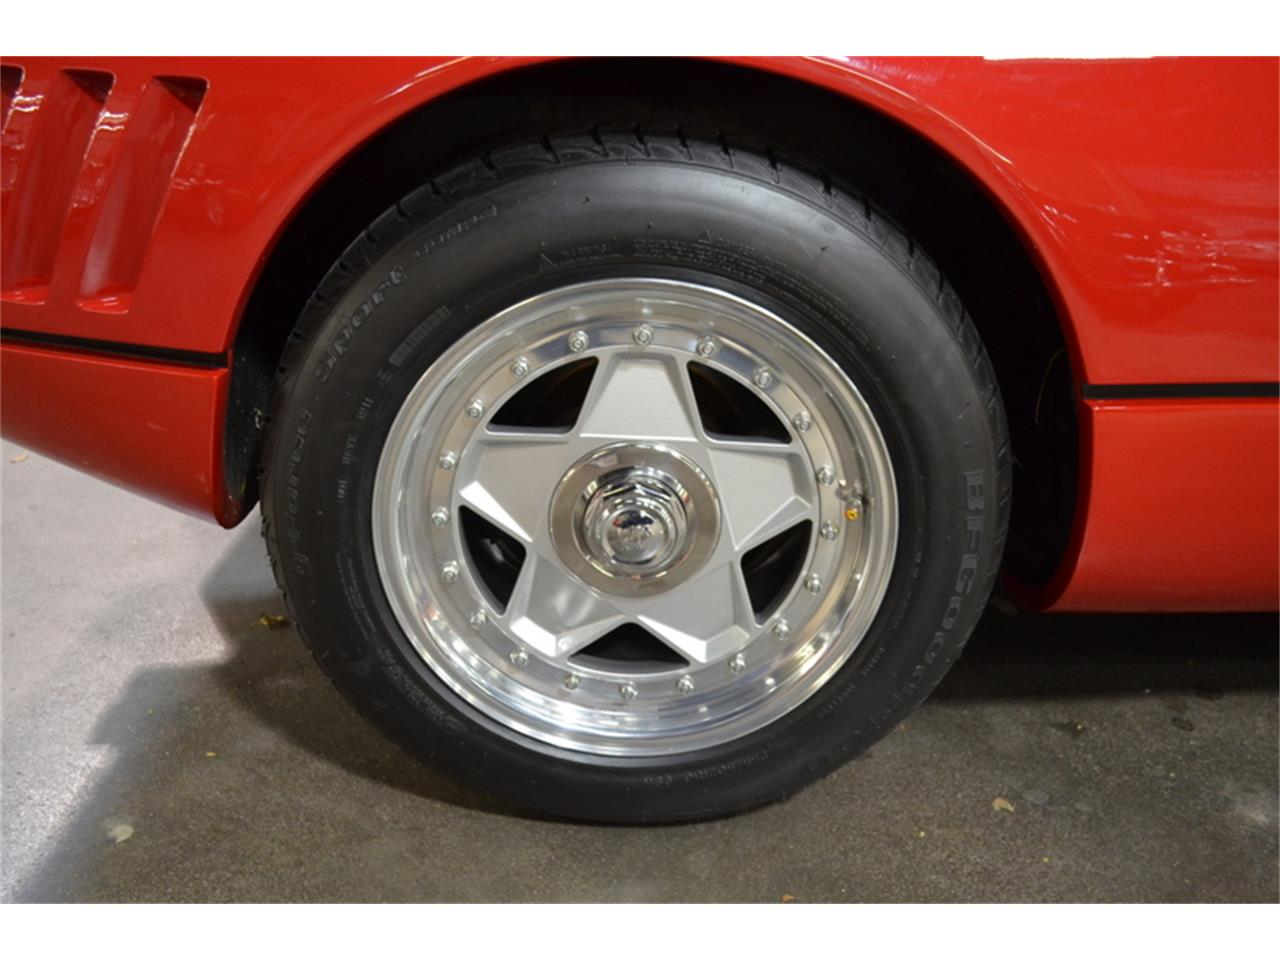 1985 Ferrari GTO for sale in Huntington Station, NY – photo 66